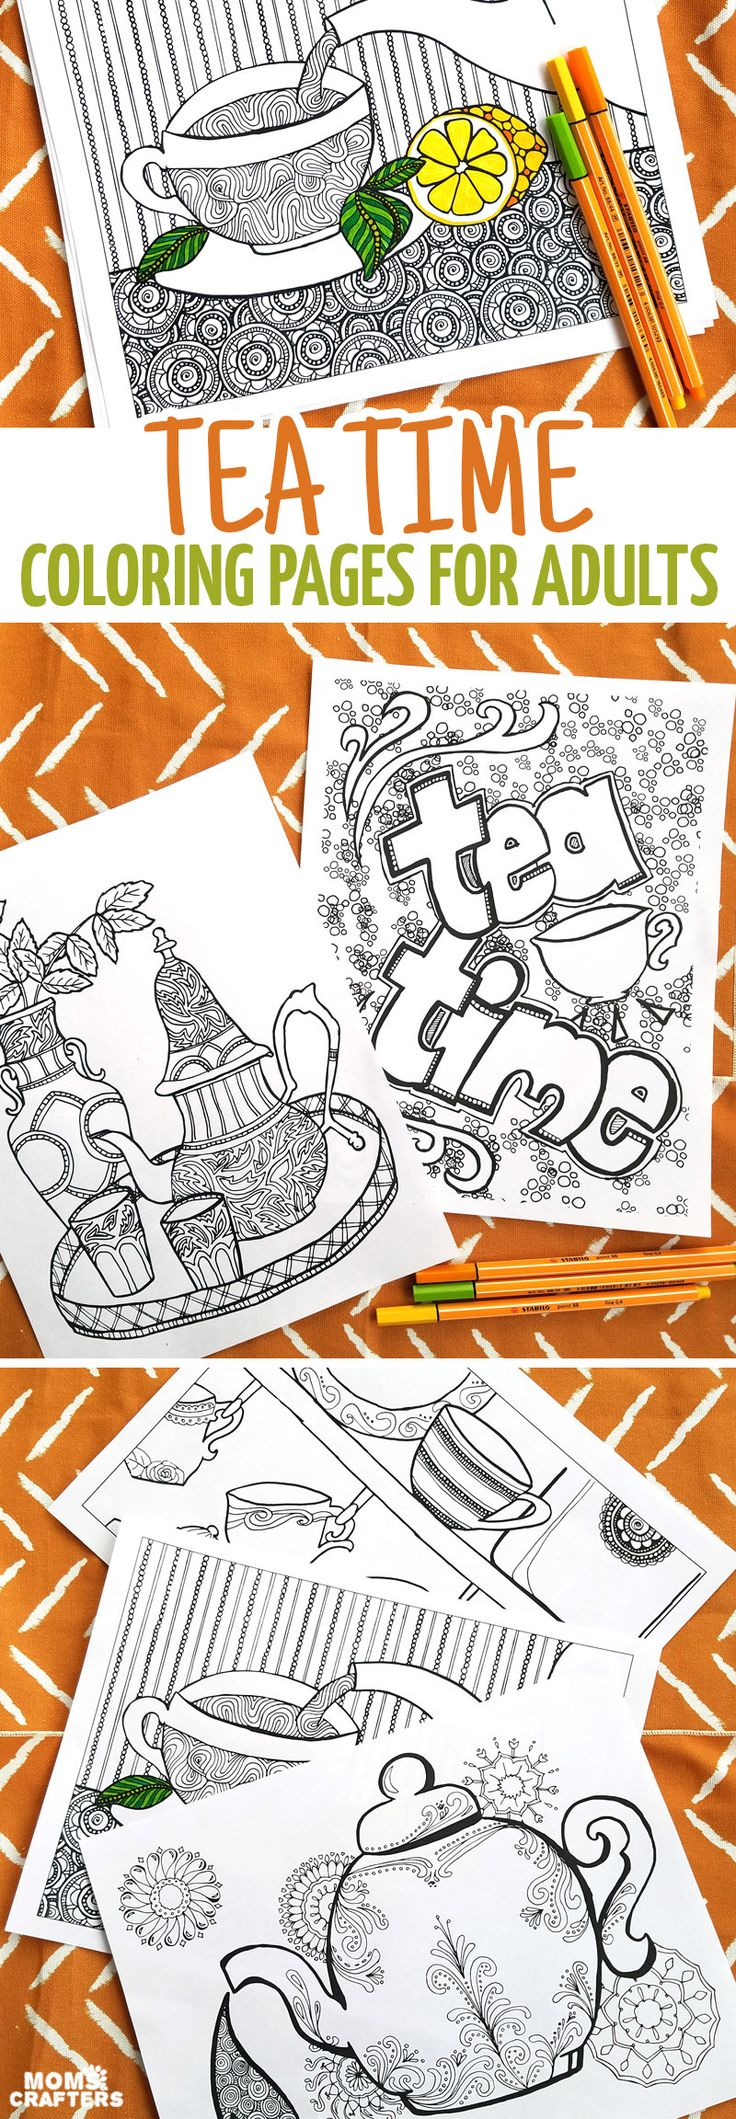 R kelly coloring pages - Adult Coloring Pages Perfect For Tea Time